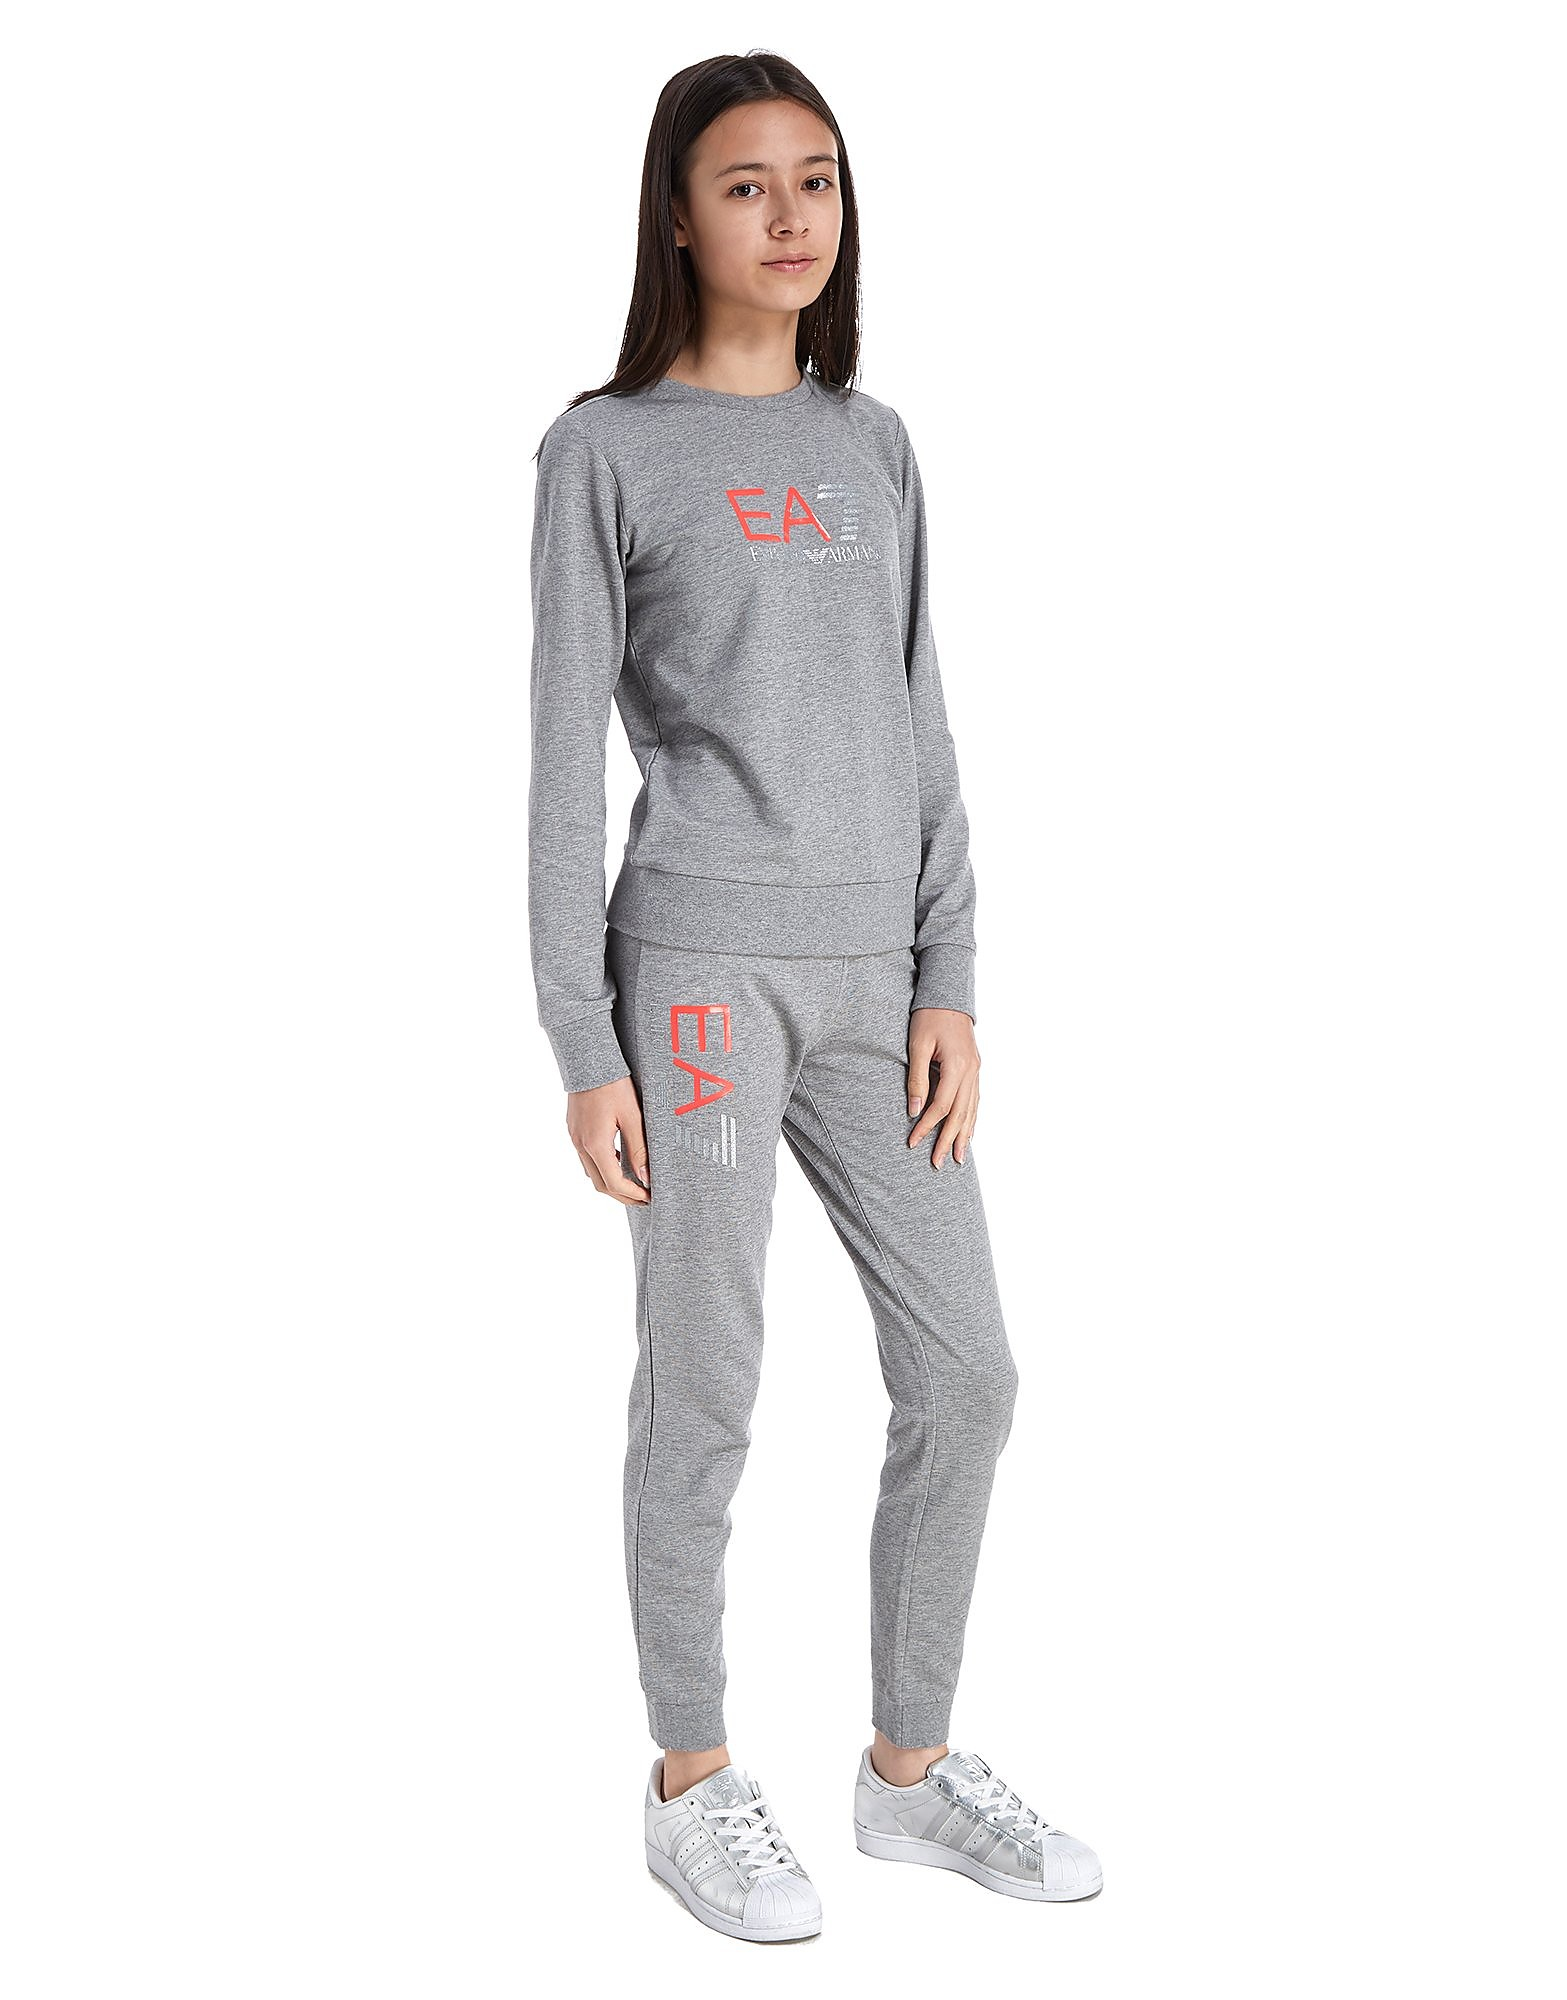 Emporio Armani EA7 Girls' Crew Tracksuit Junior